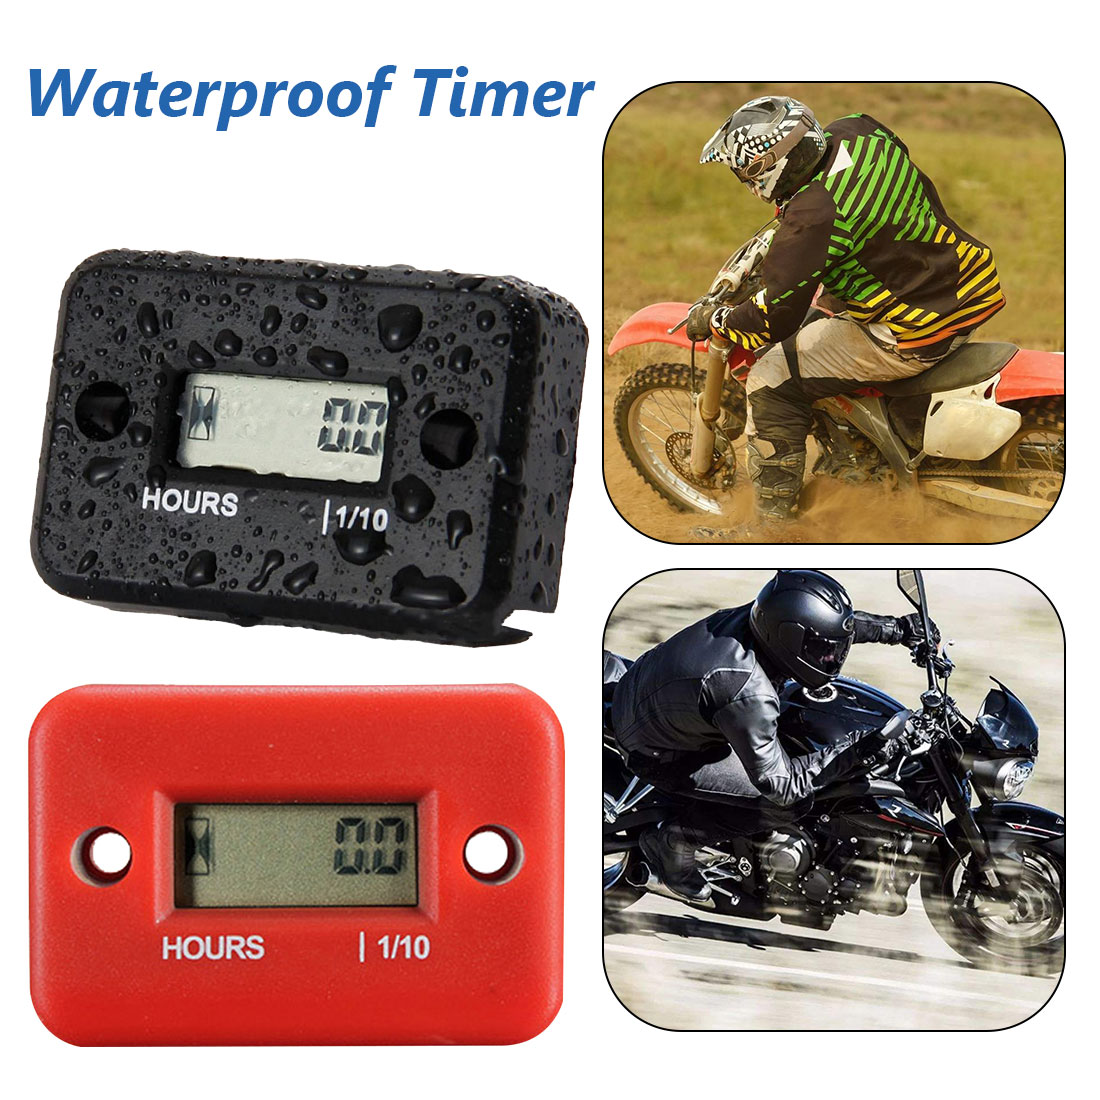 Digital Hour Meter Waterproof LCD Display Inductive Hour Meter Tachometer for Bike Motorcycle Snowmobile Marine Engine 0-9999.9H image